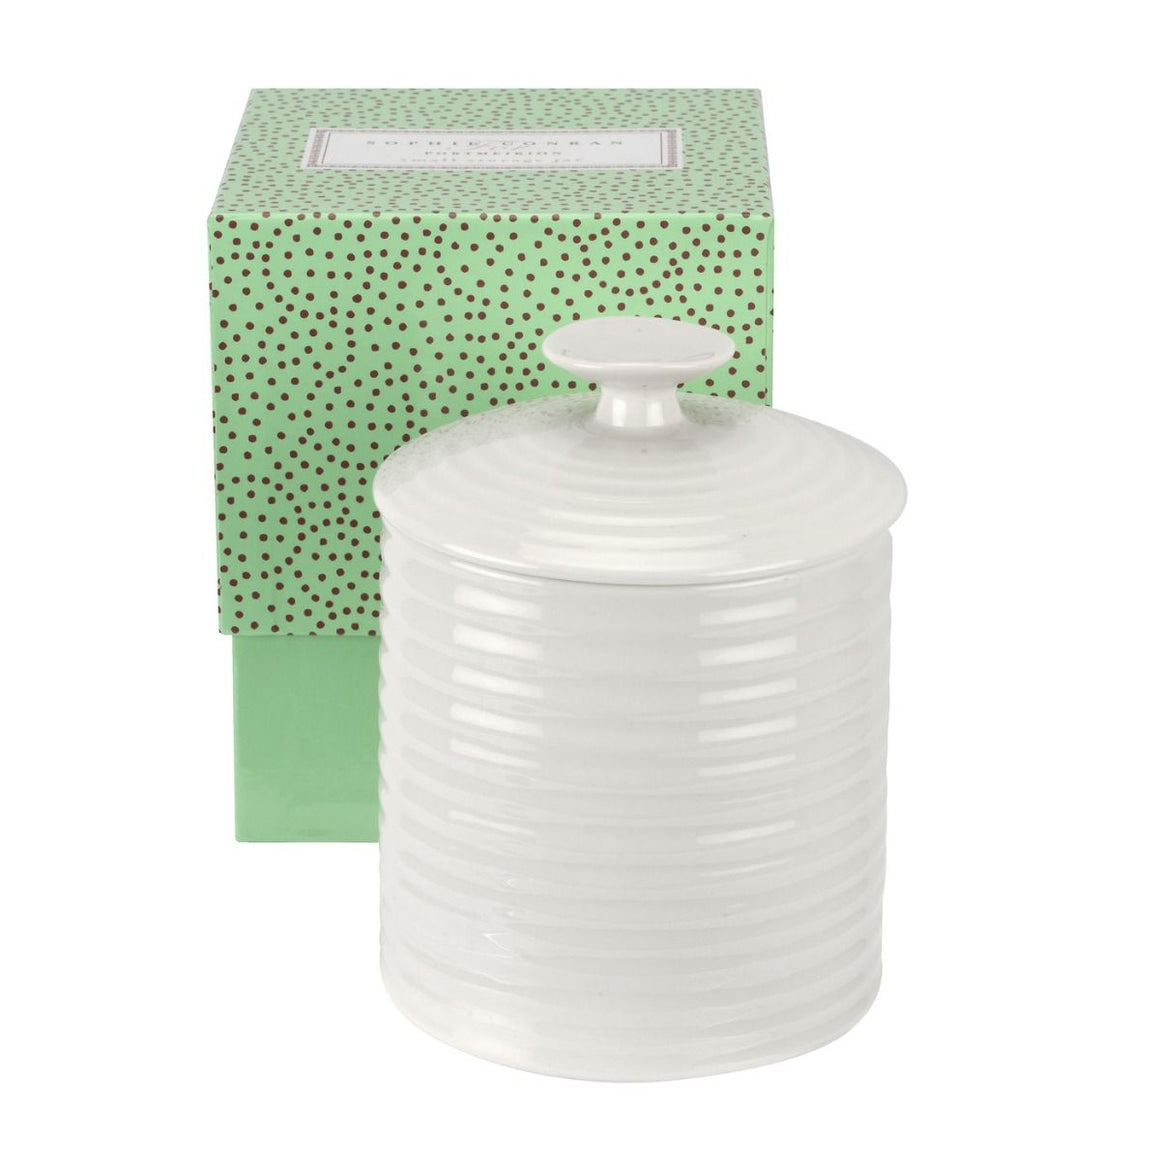 Sophie Conran Small Storage Jar